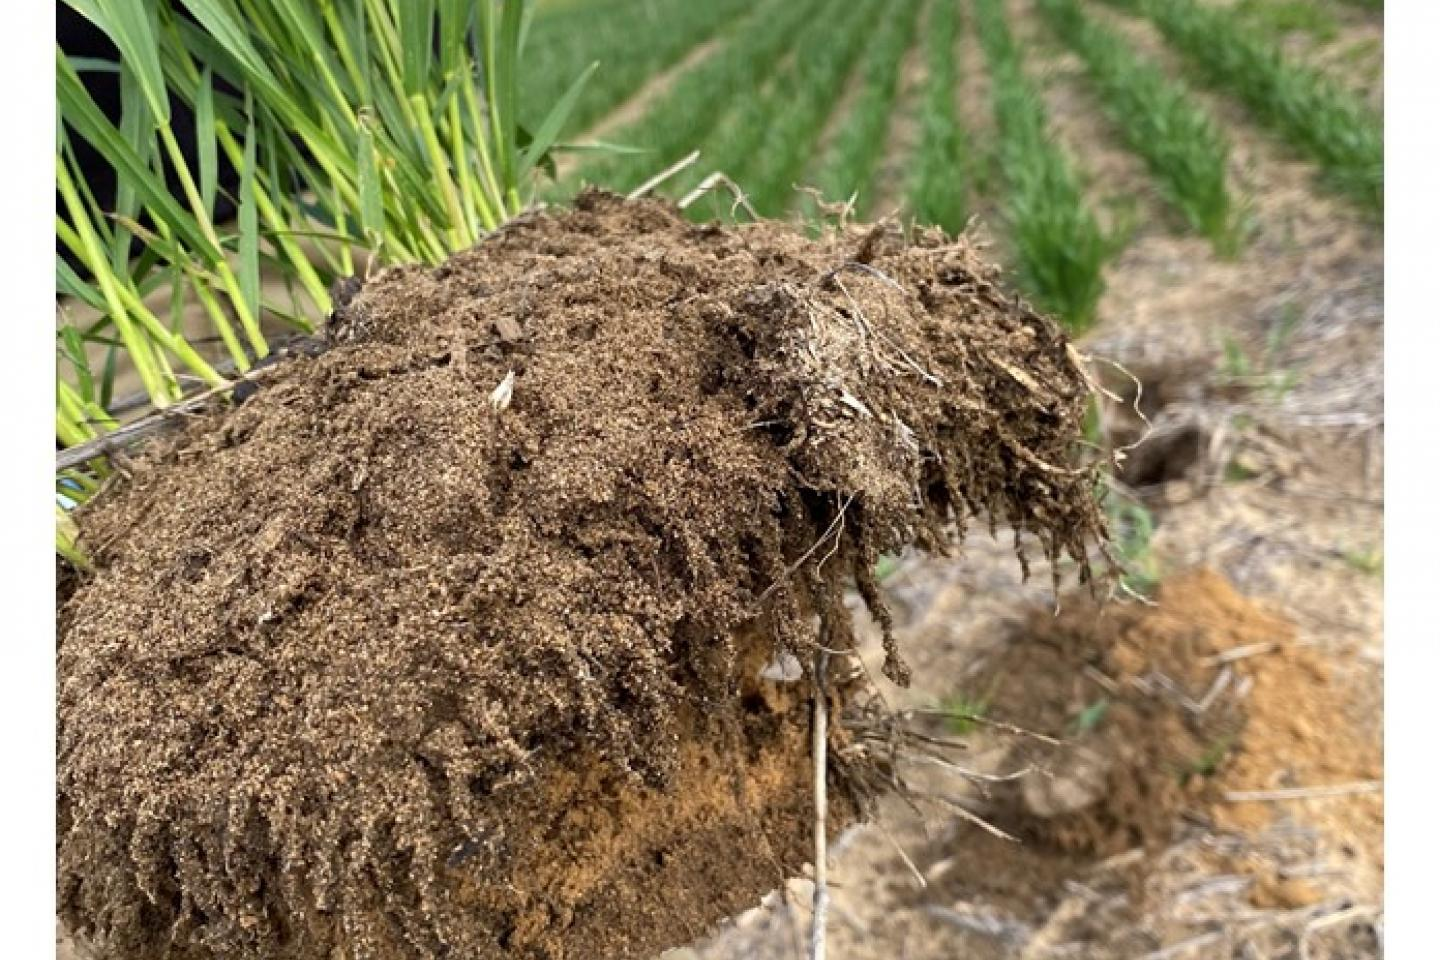 Classic root 'dreadlocks' are a sign of a healthy plant in healthy soil.